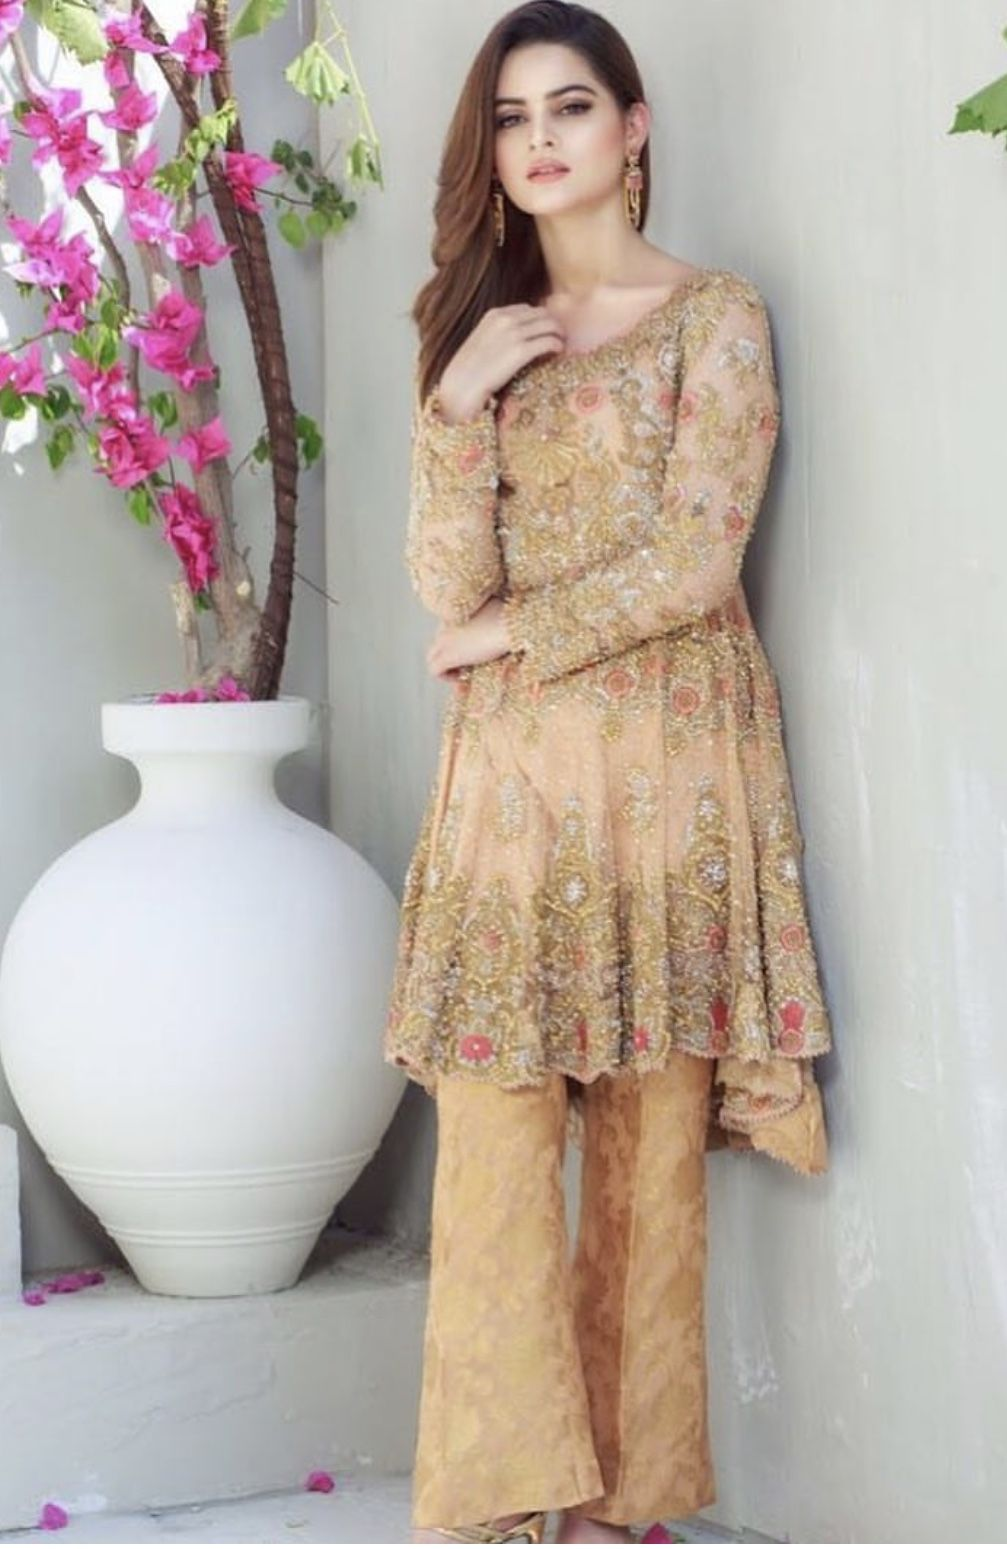 aaila hoorain | indian designer outfits, fancy dress design